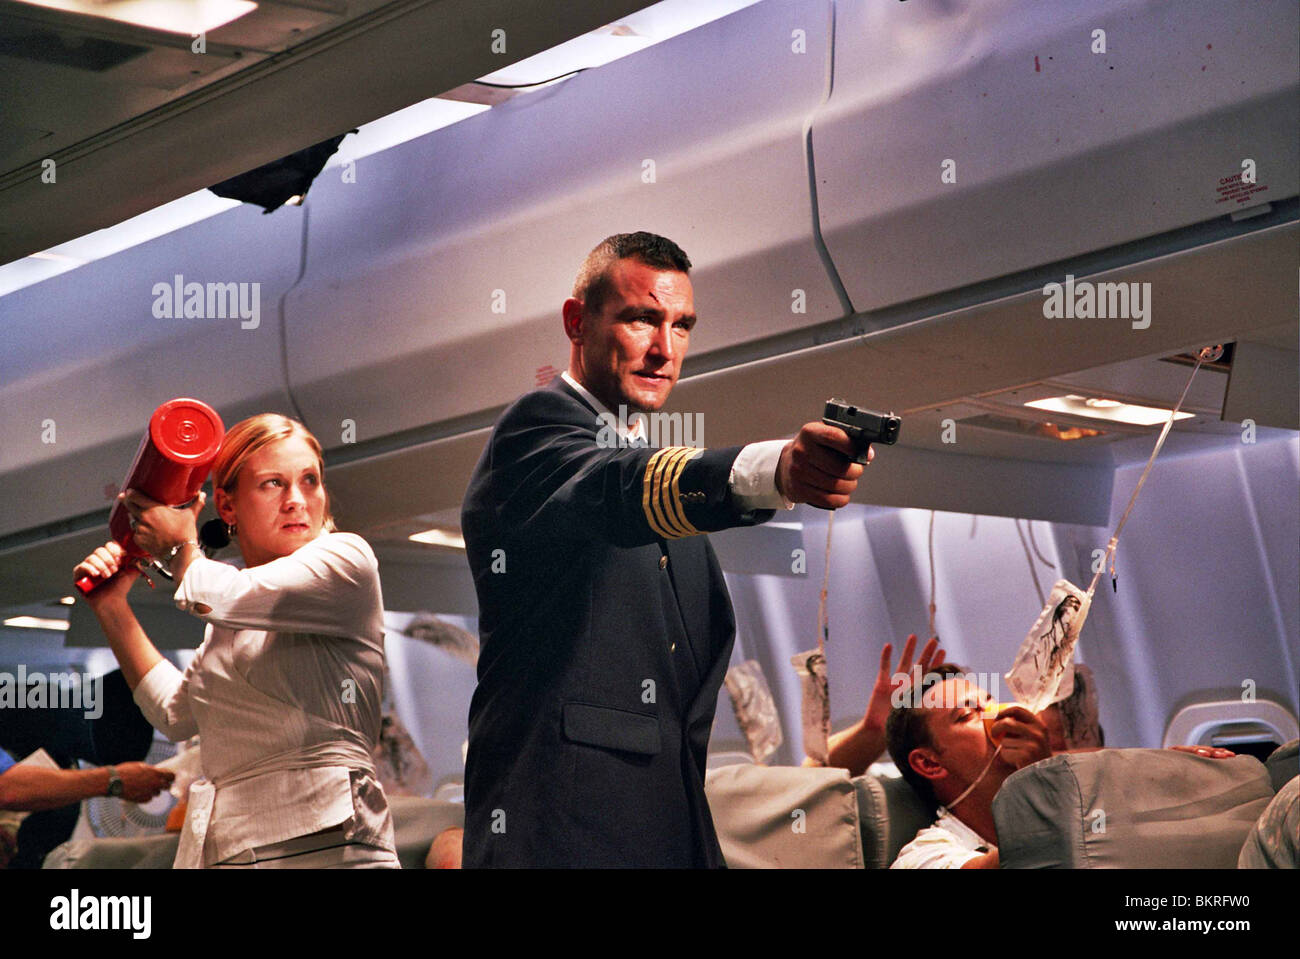 SLIPSTREAM (2007) VINNIE JONES ANTHONY HOPKINS (DIR) 001 Stock Photo